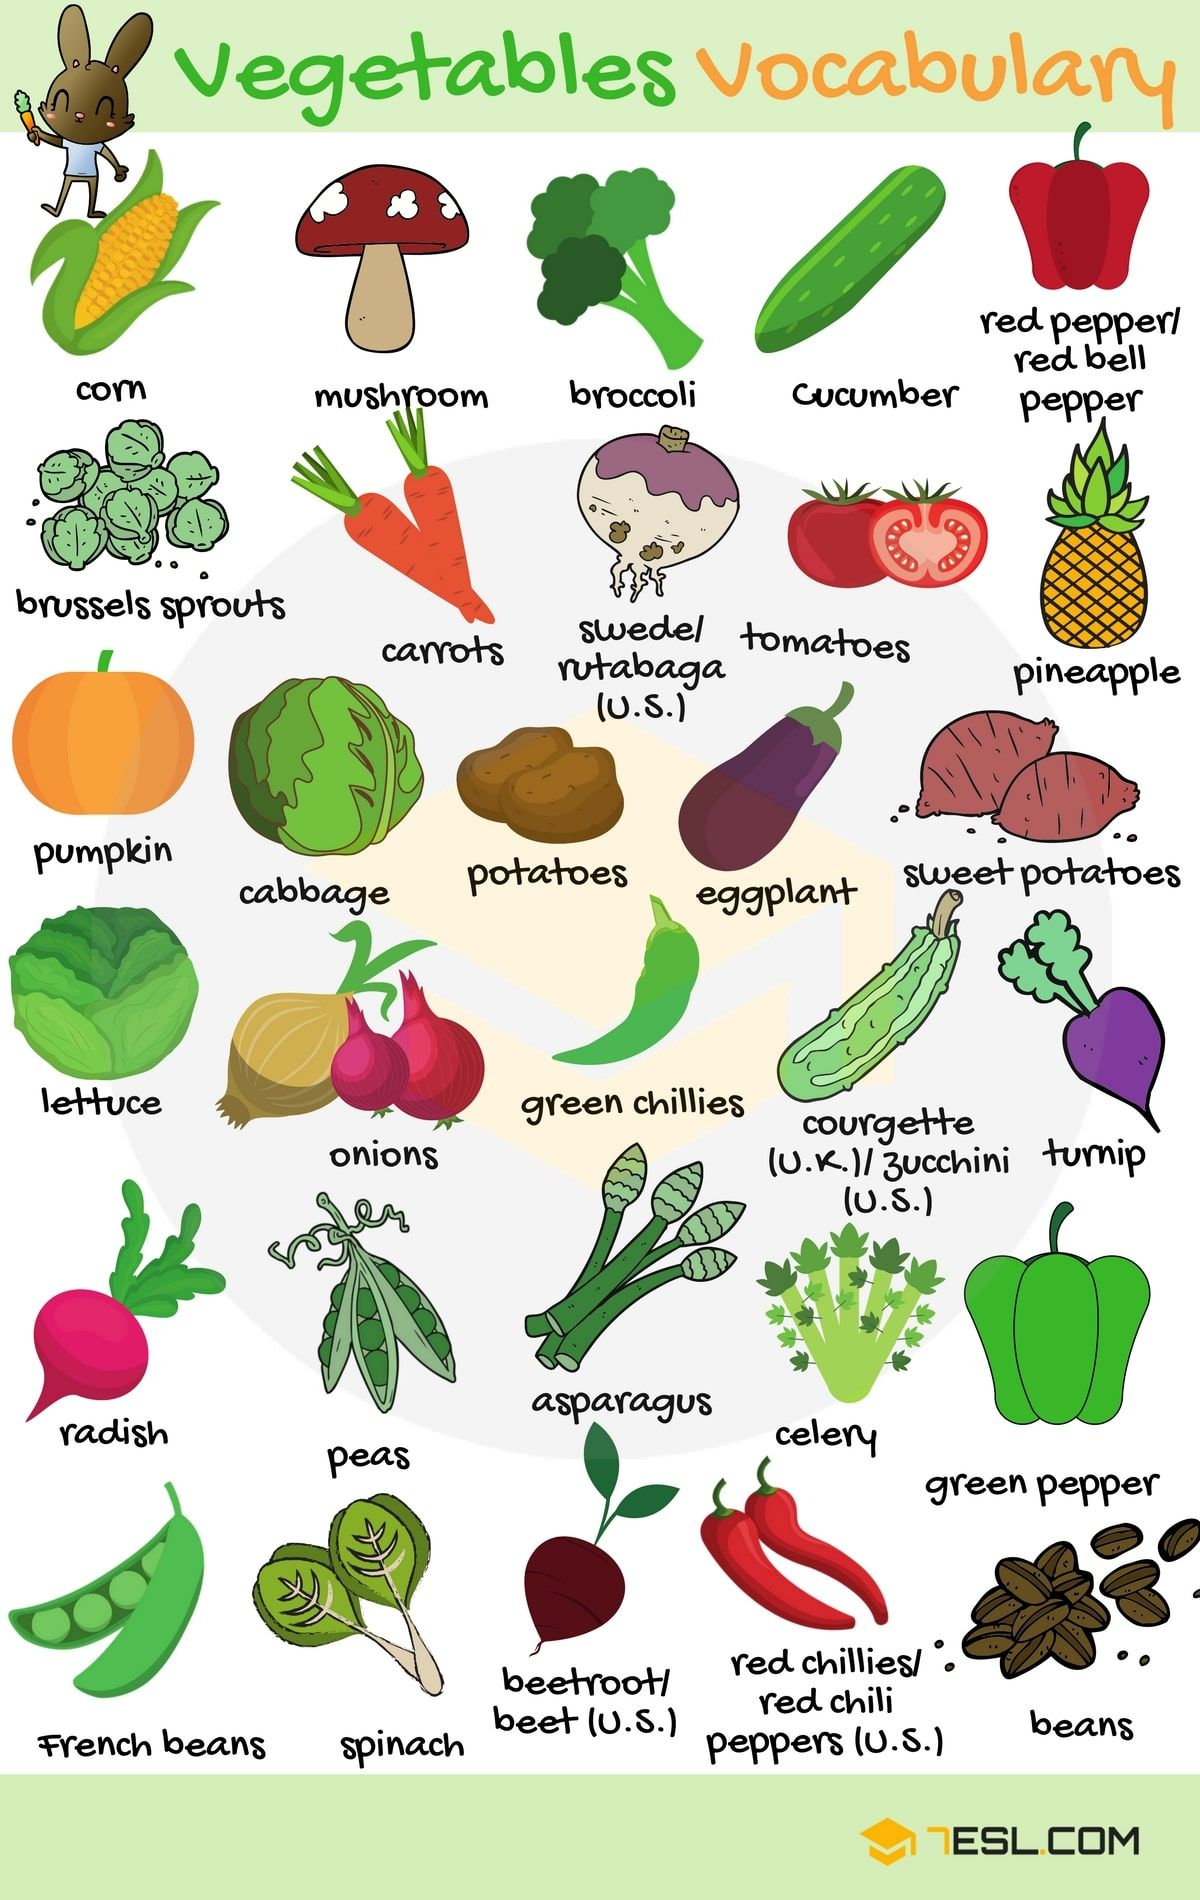 10 0kshares Learn Names Of Fruits And Vegetables Through Pictures A Fruit Is The Seed Be English Vocabulary English Lessons For Kids Learning English For Kids